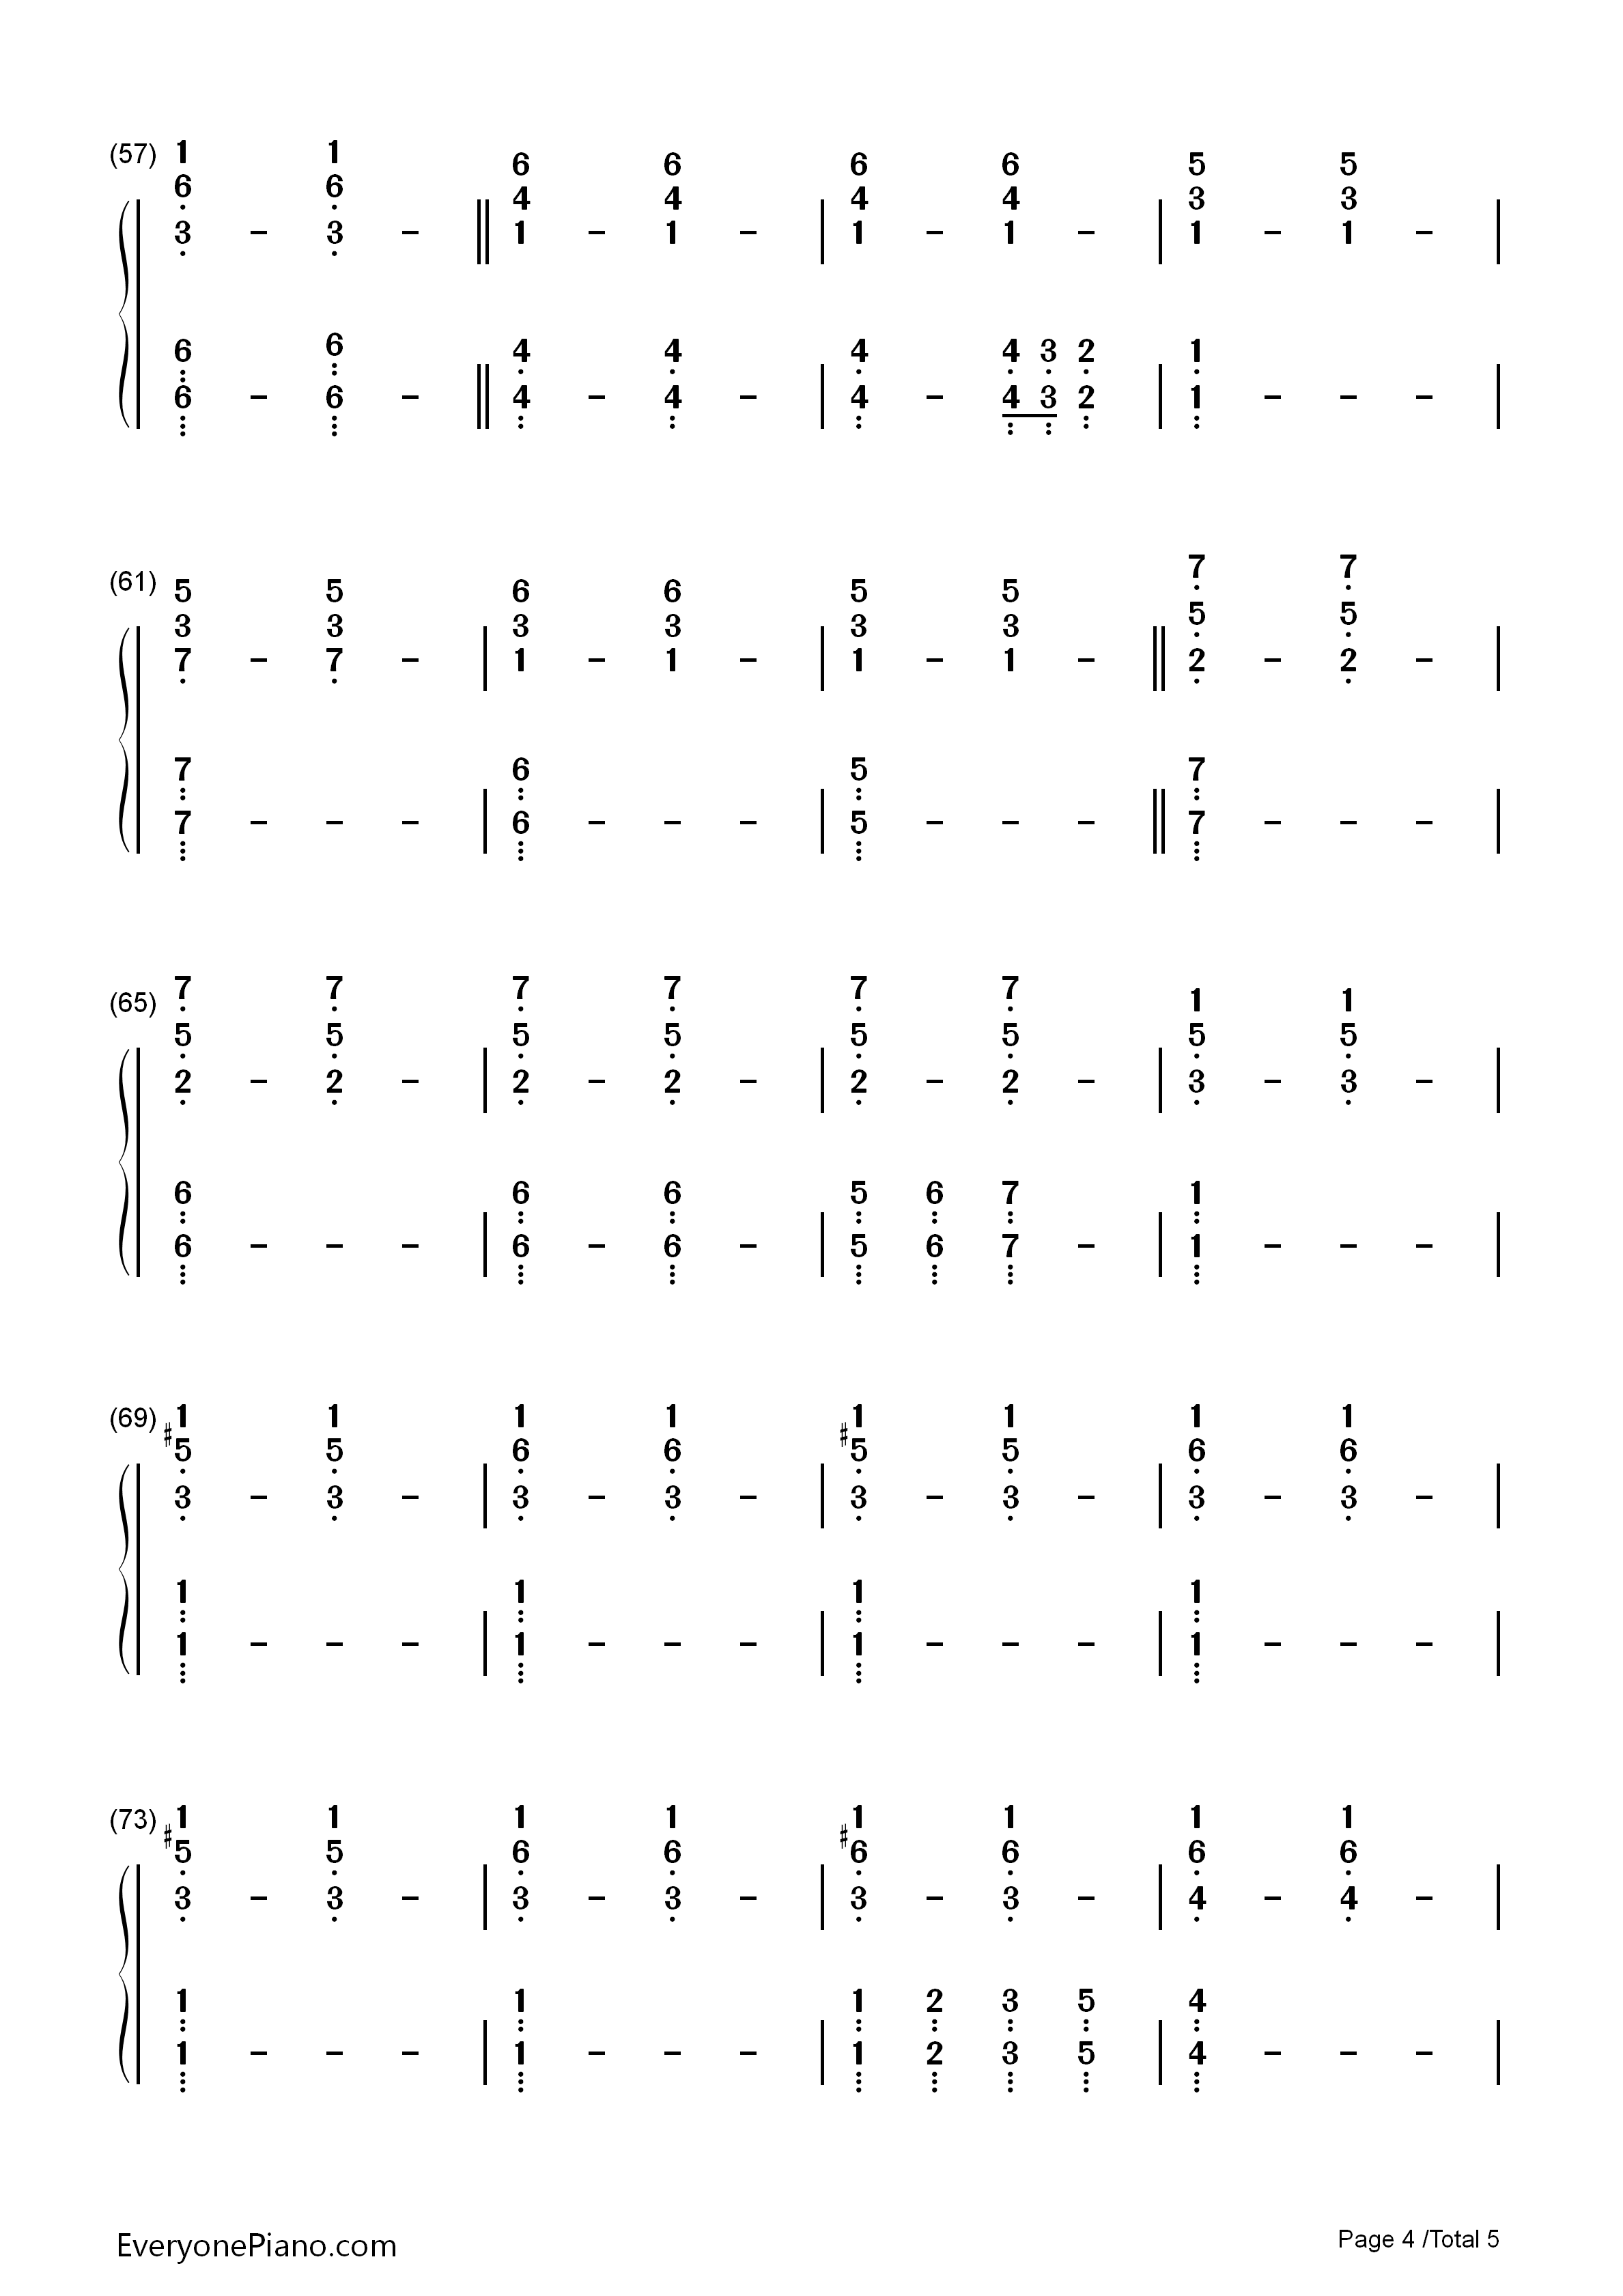 Impossible year panic at the disco numbered musical notation listen now print sheet impossible year panic at the disco numbered musical notation preview 4 hexwebz Images